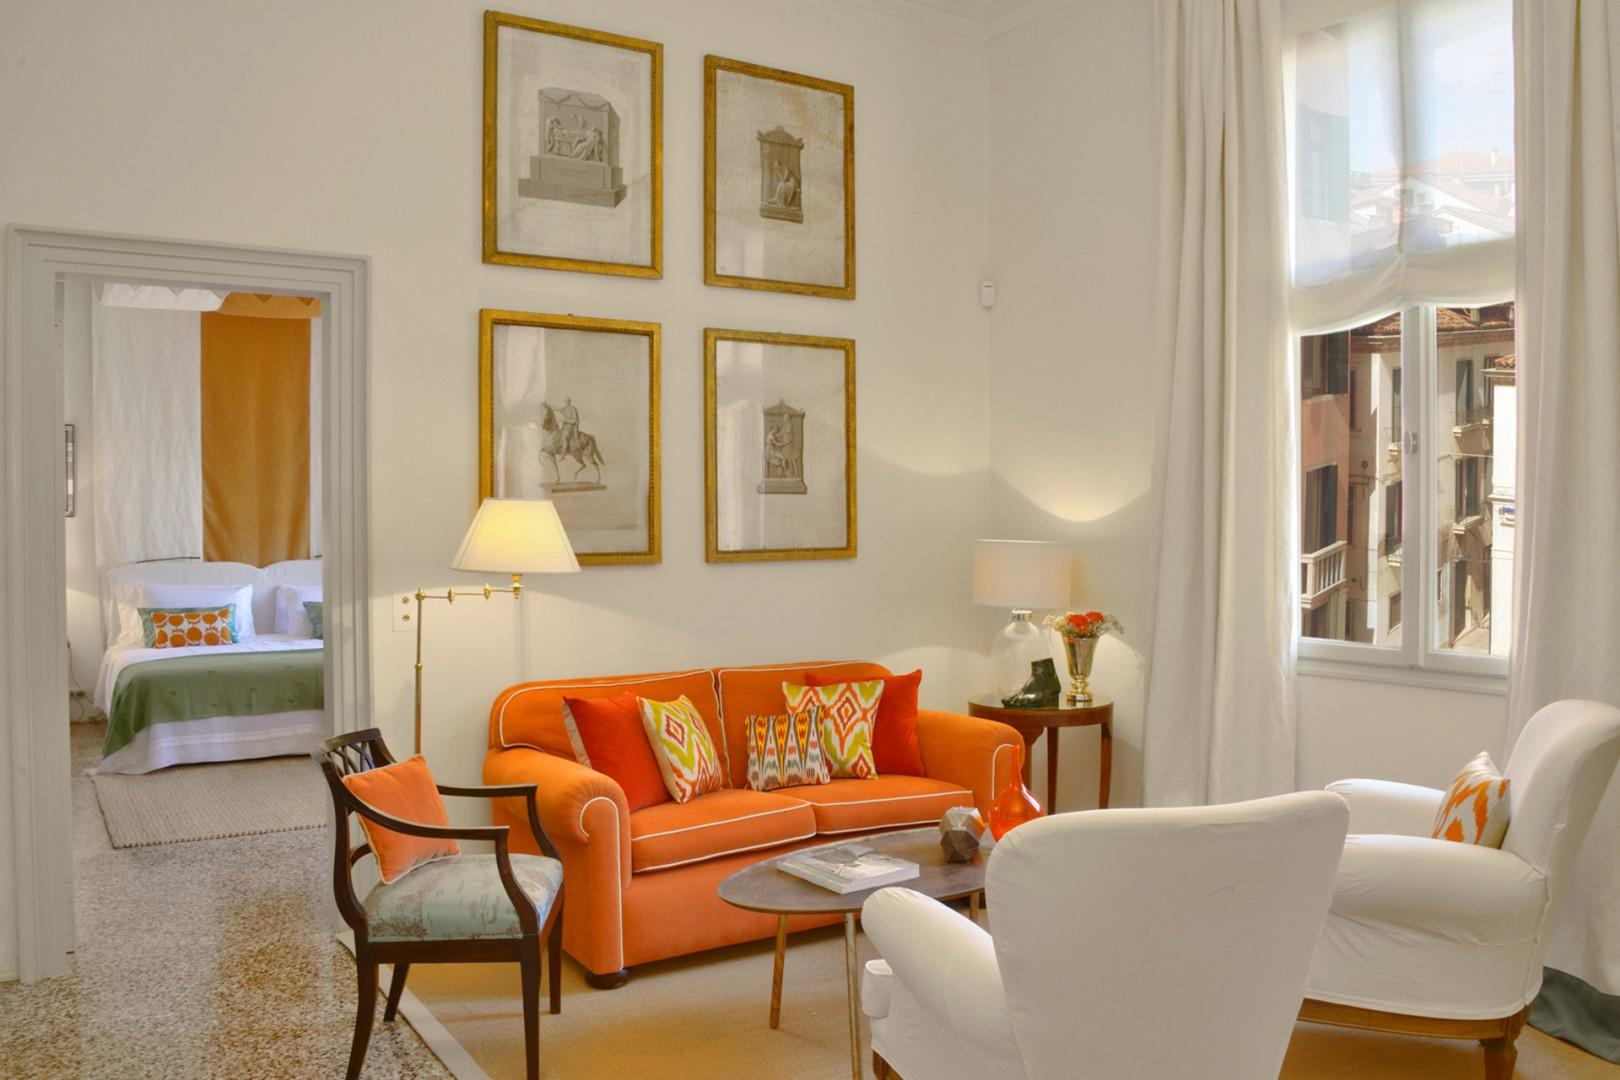 The bright living room of the Menta apartment with antique prints above the sofa.